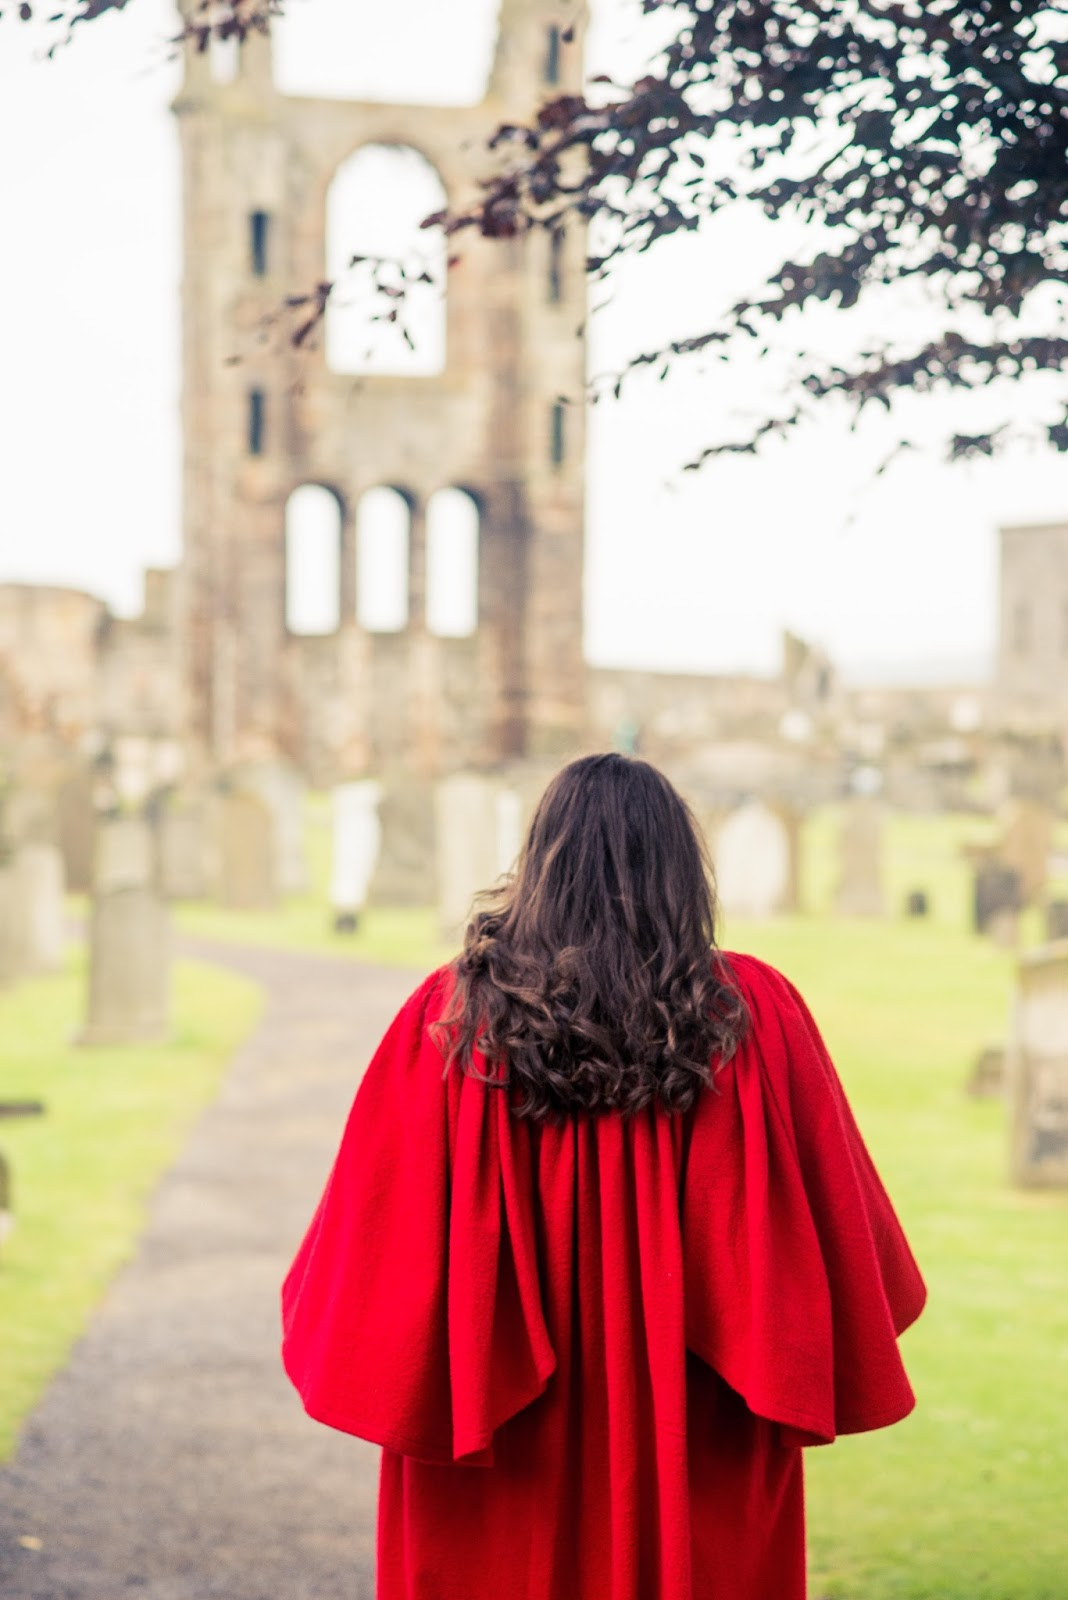 st andrews cathedral red gown photo shoot graduation